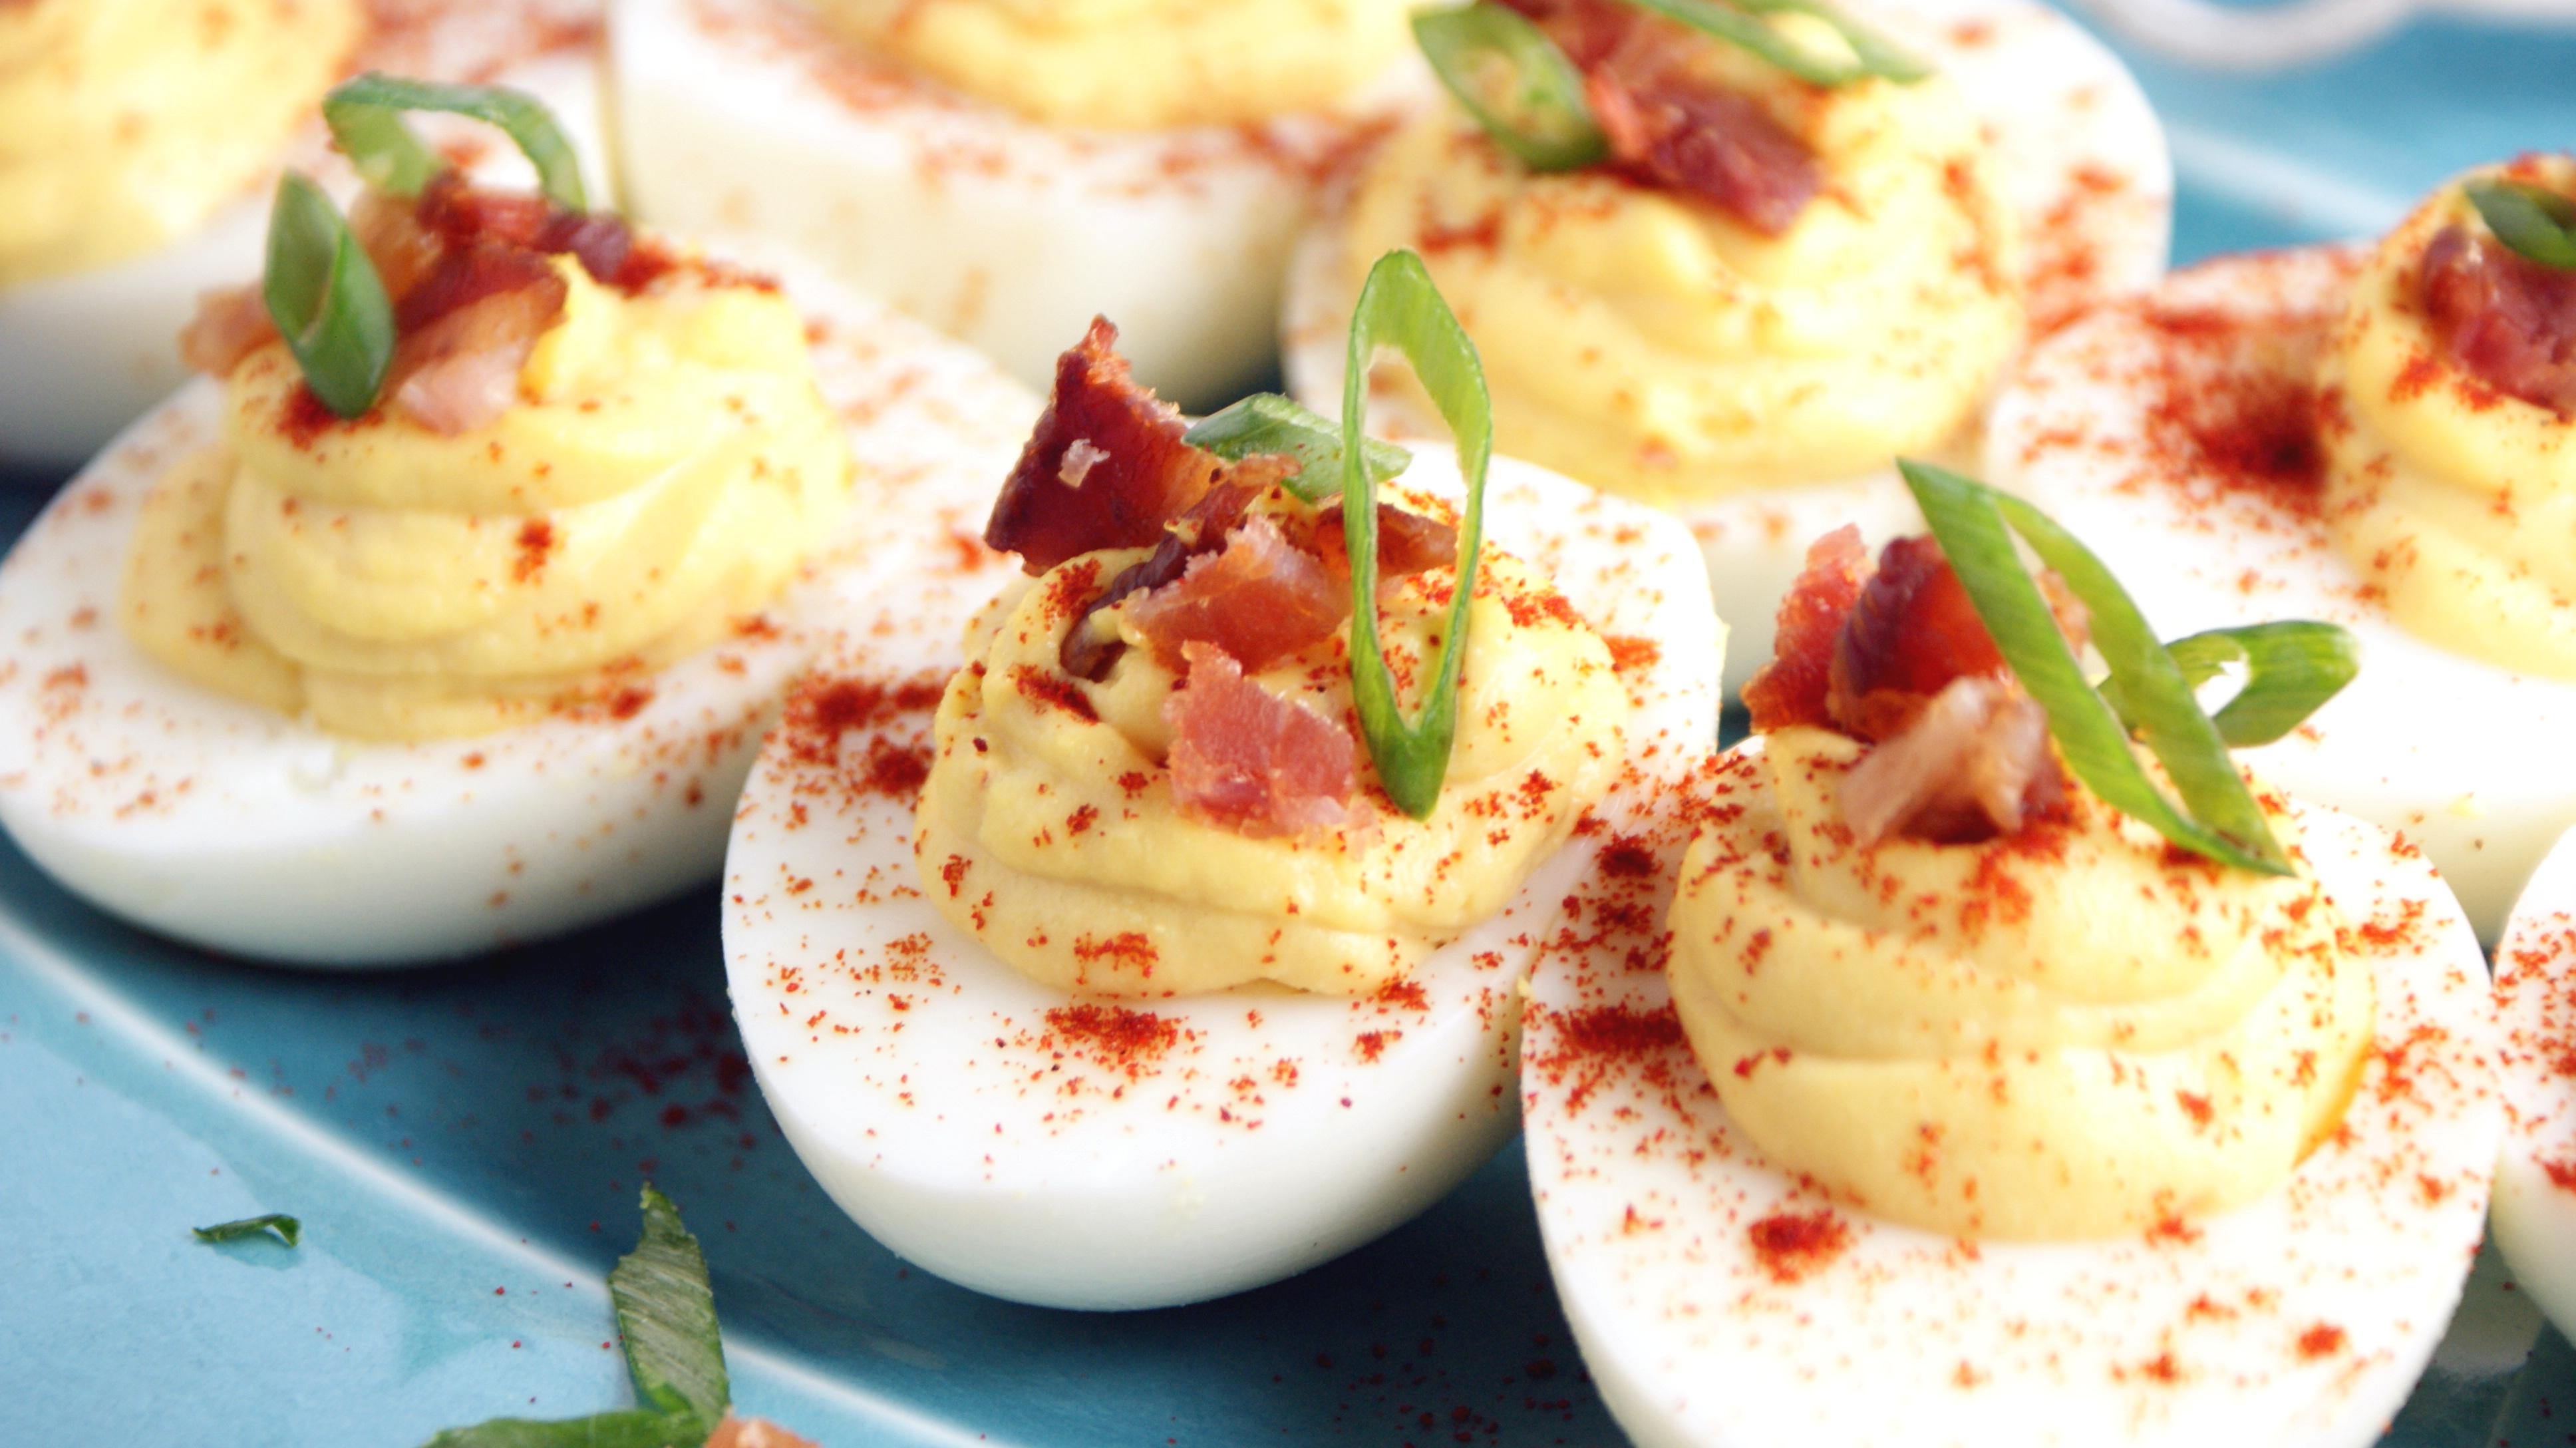 Bacon Deviled Eggs - Cooking Up Clean